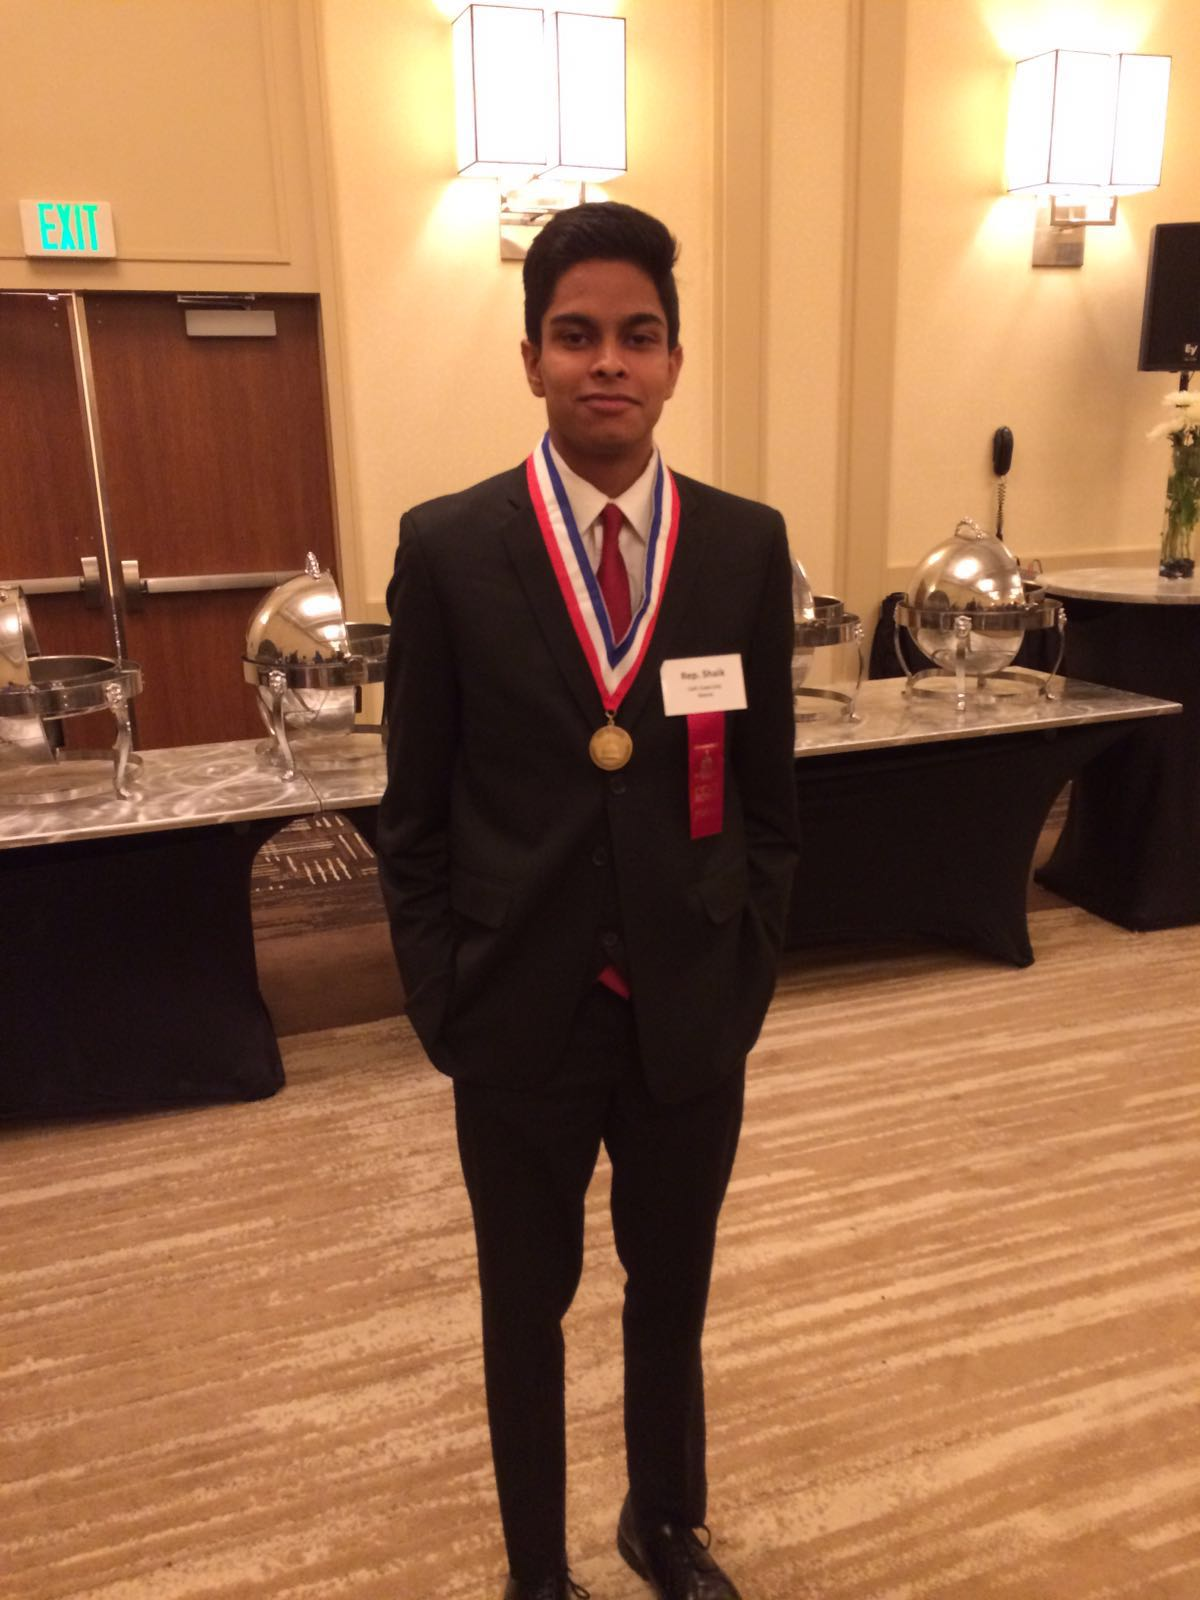 Ismail looking dapper at the post-final round banquet.